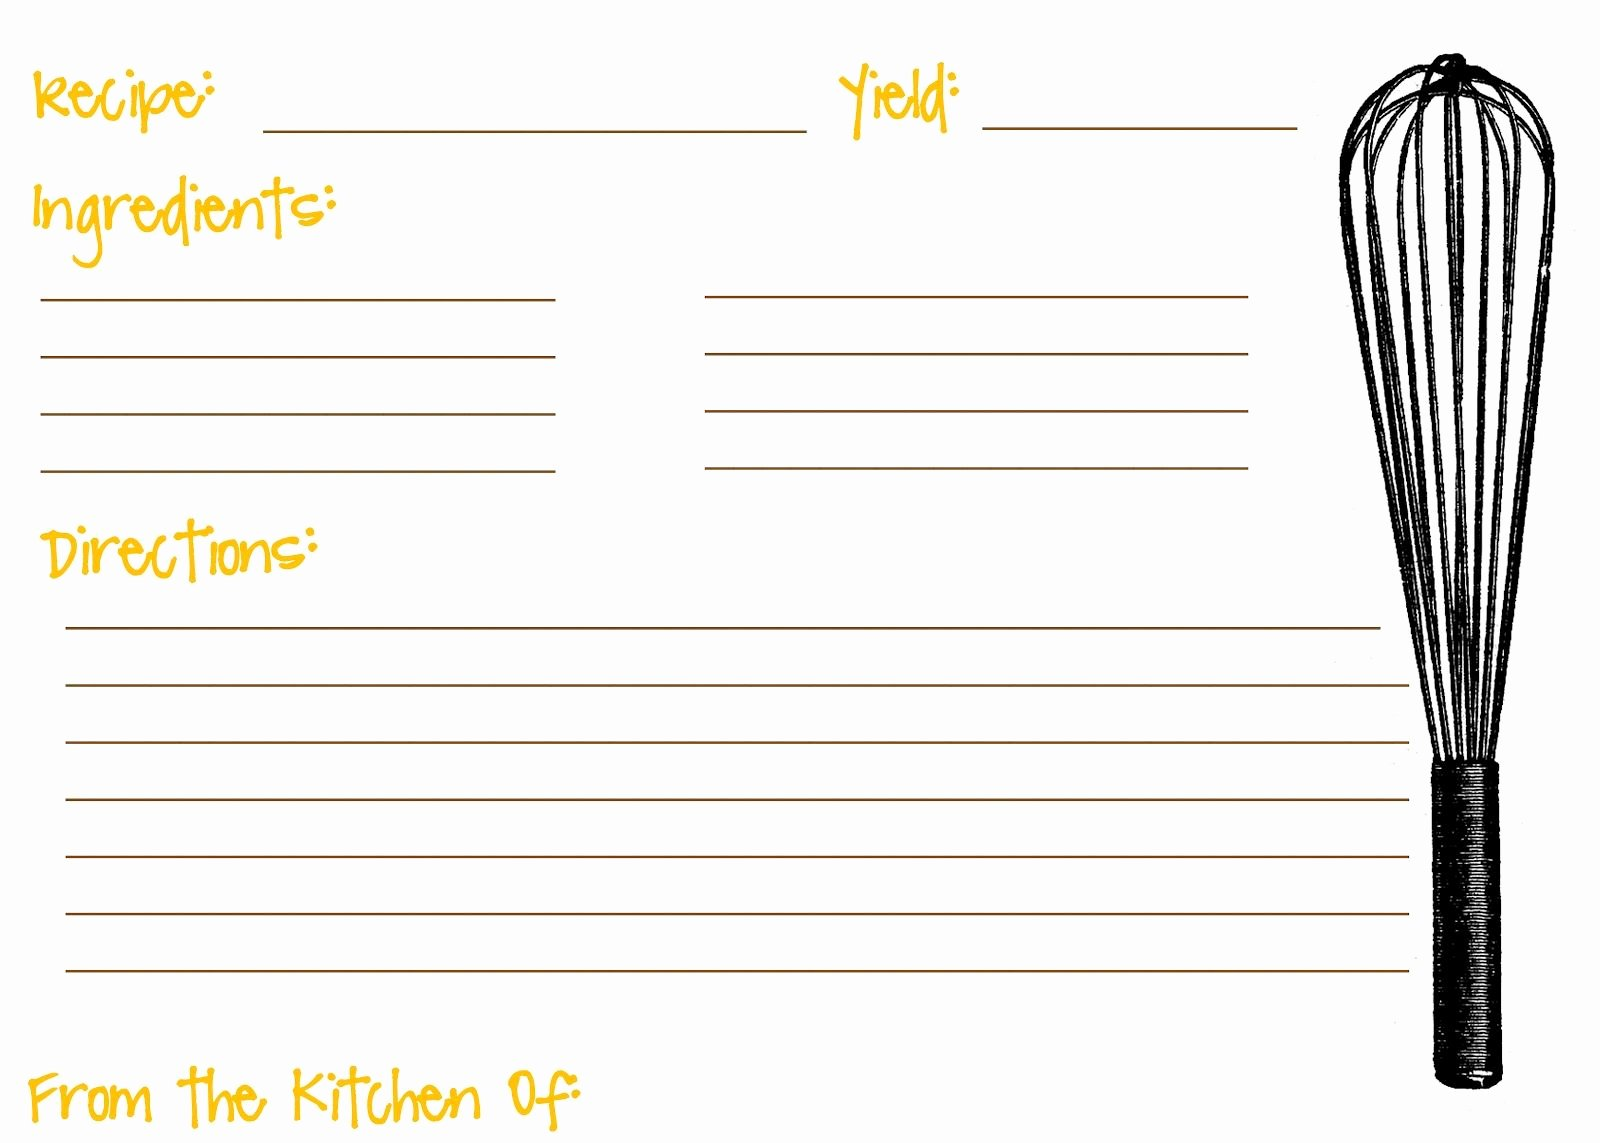 Free Recipe Card Templates Unique Scooter Cakes Free Printable Recipe Cards